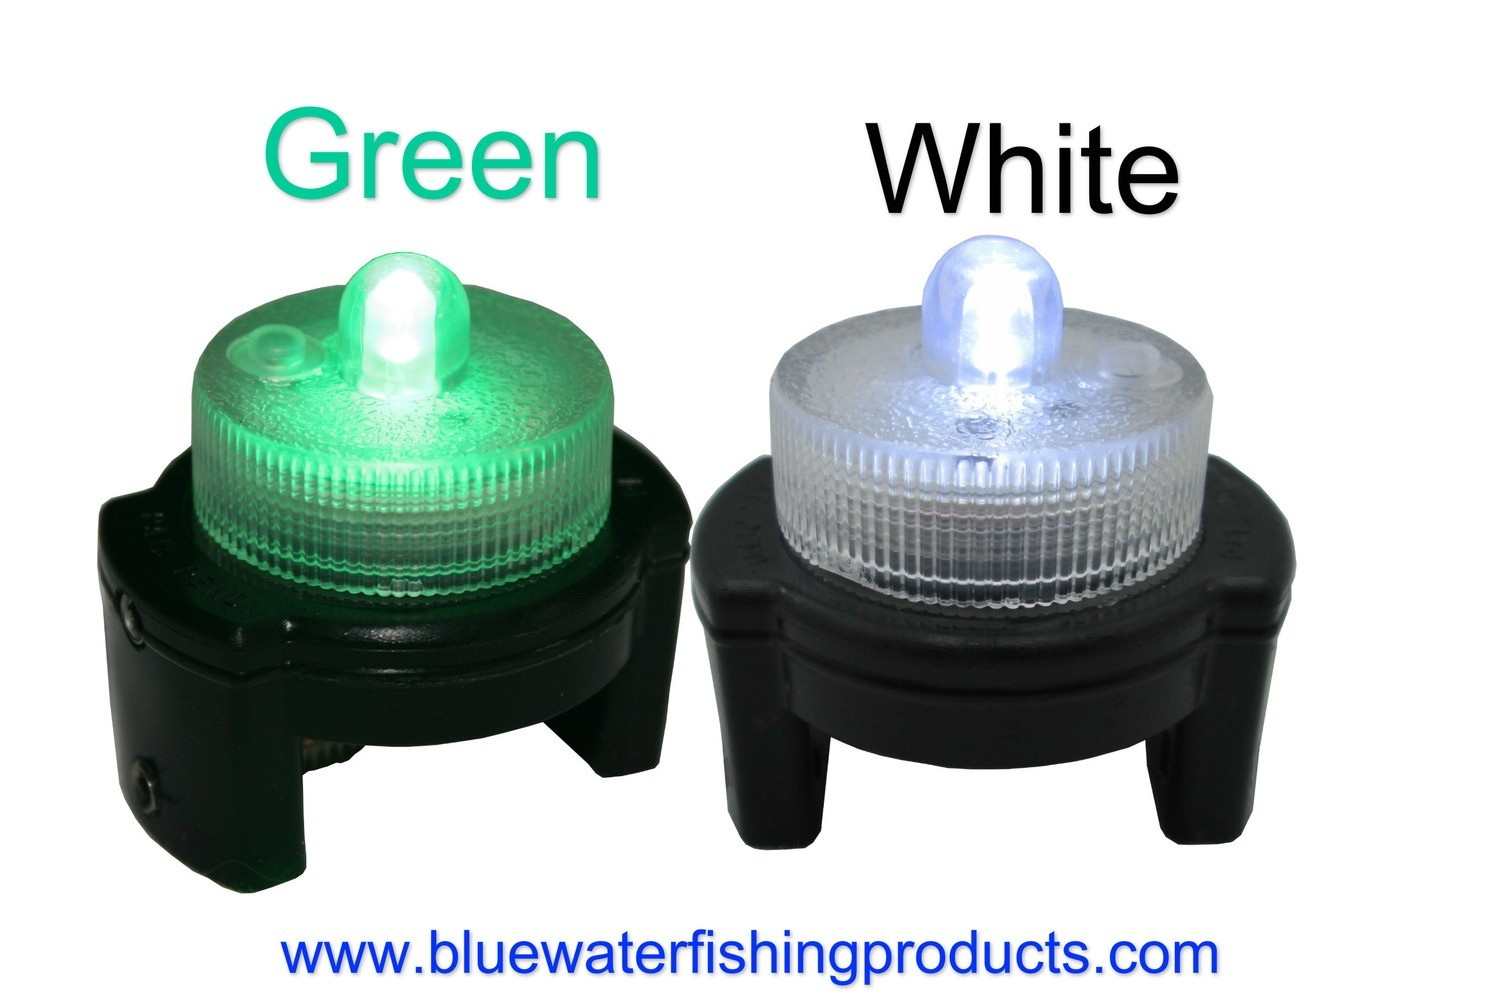 Planer Board LED Lights (3 Modes On/Off,Qty 2,White & Green)FREE SHIPPING